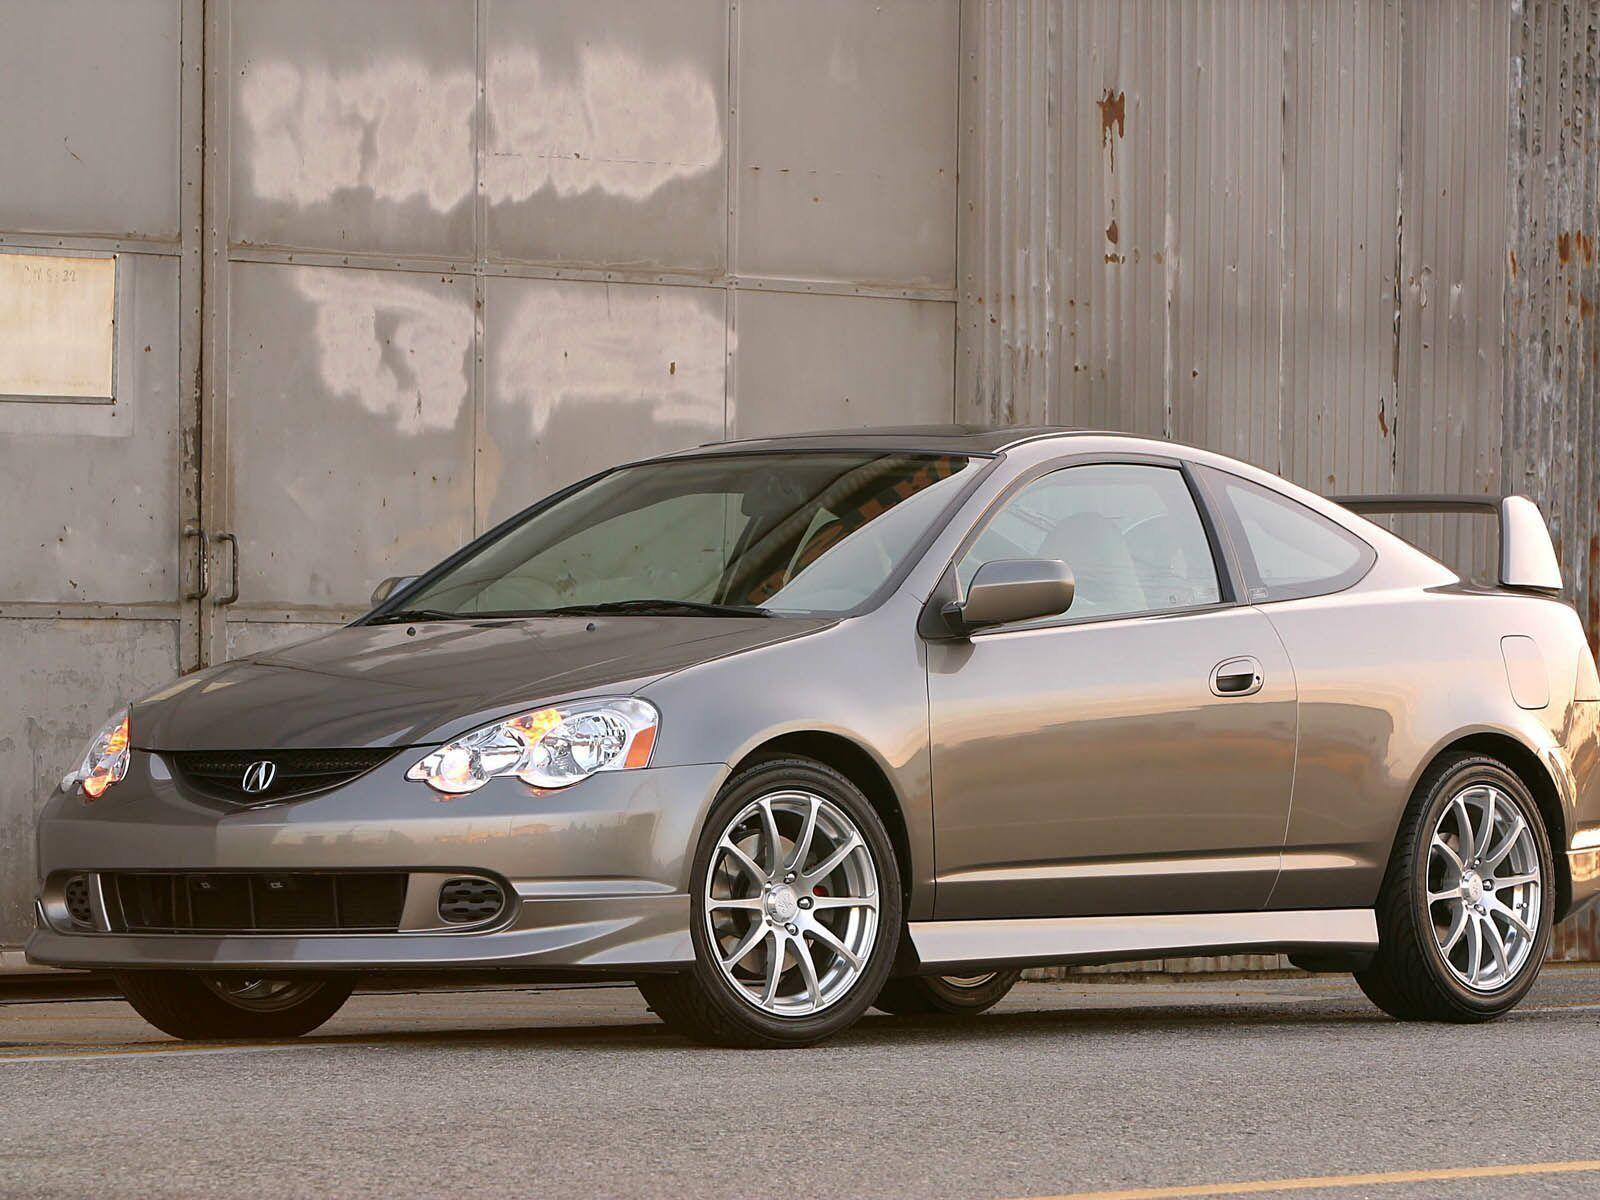 Download Acura Rsx Hd Backgrounds Wallpapers 43 HD Wallpapers Full Size